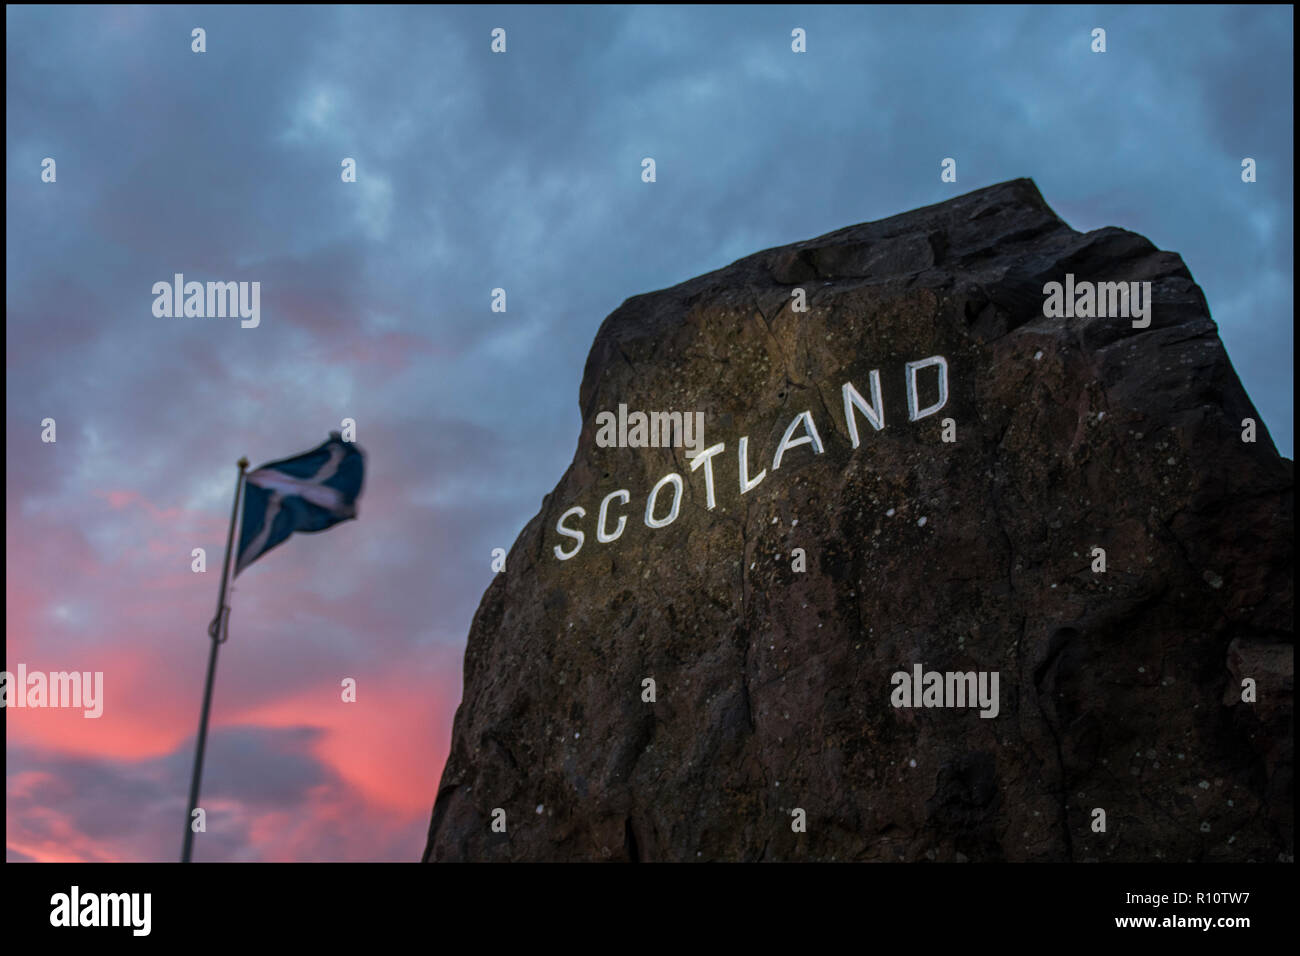 The large rock  with Scotland engraved and painted in white, which marks the border between Scotland and England at the Carter Bar. - Stock Image